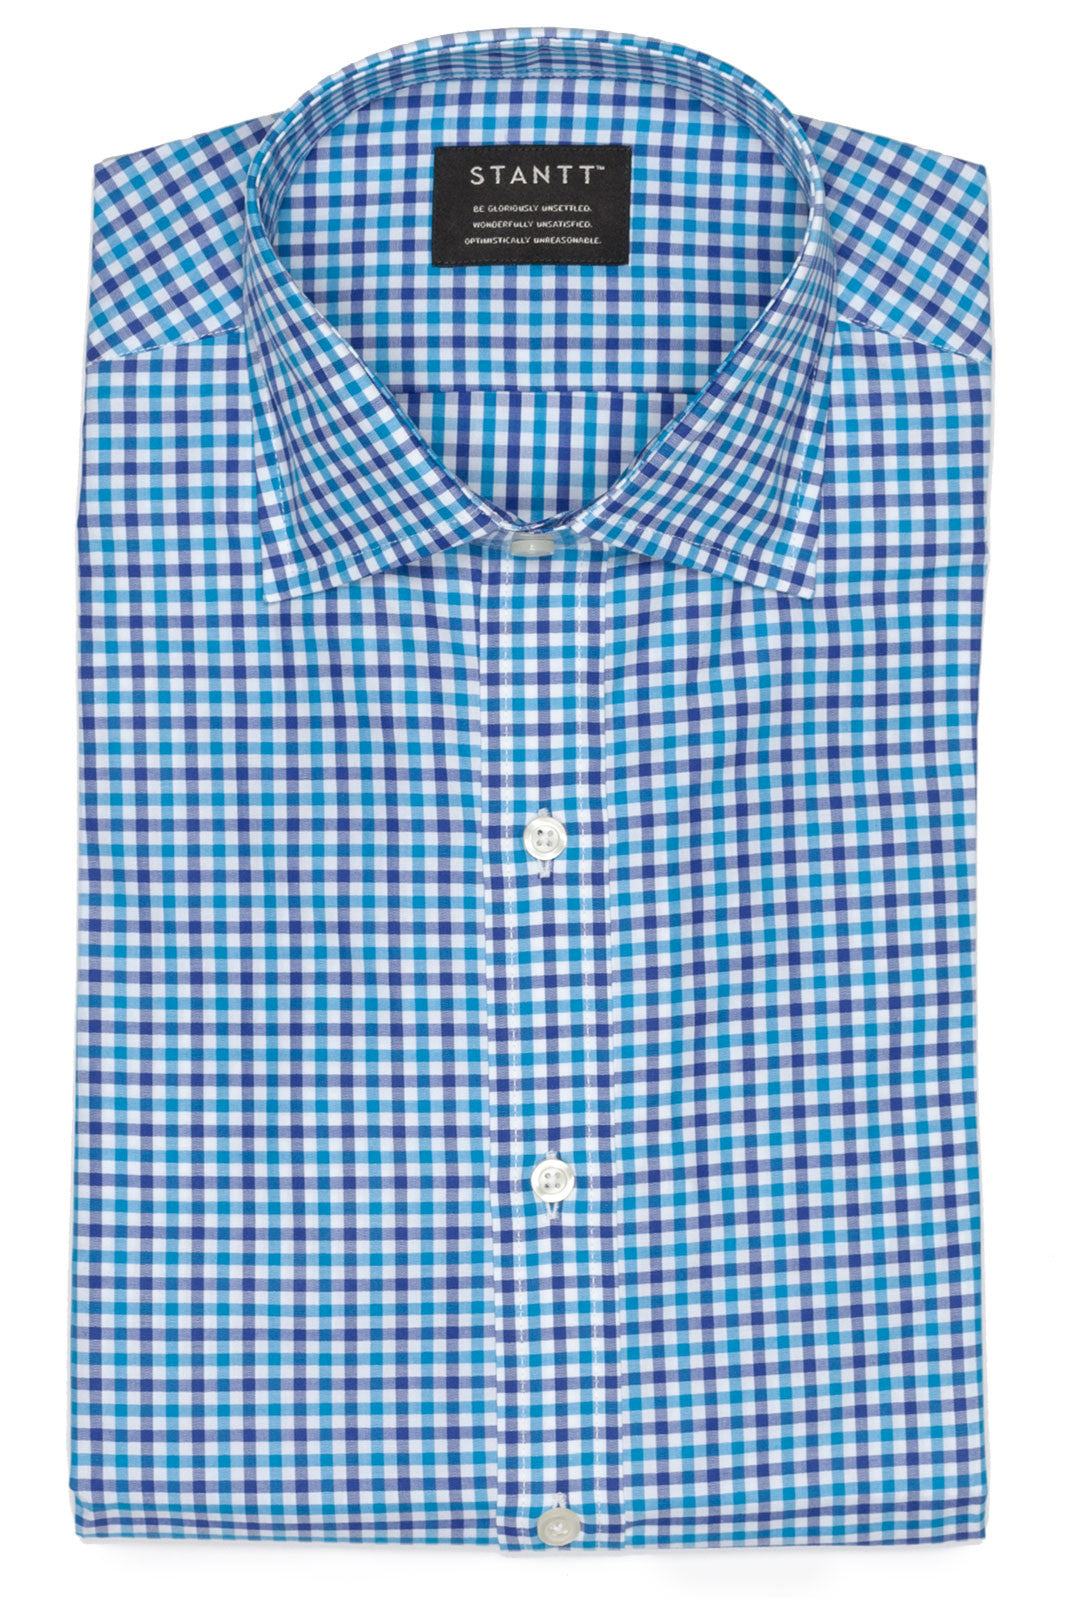 Navy and Aqua Gingham: Button-Down Collar, Barrel Cuff